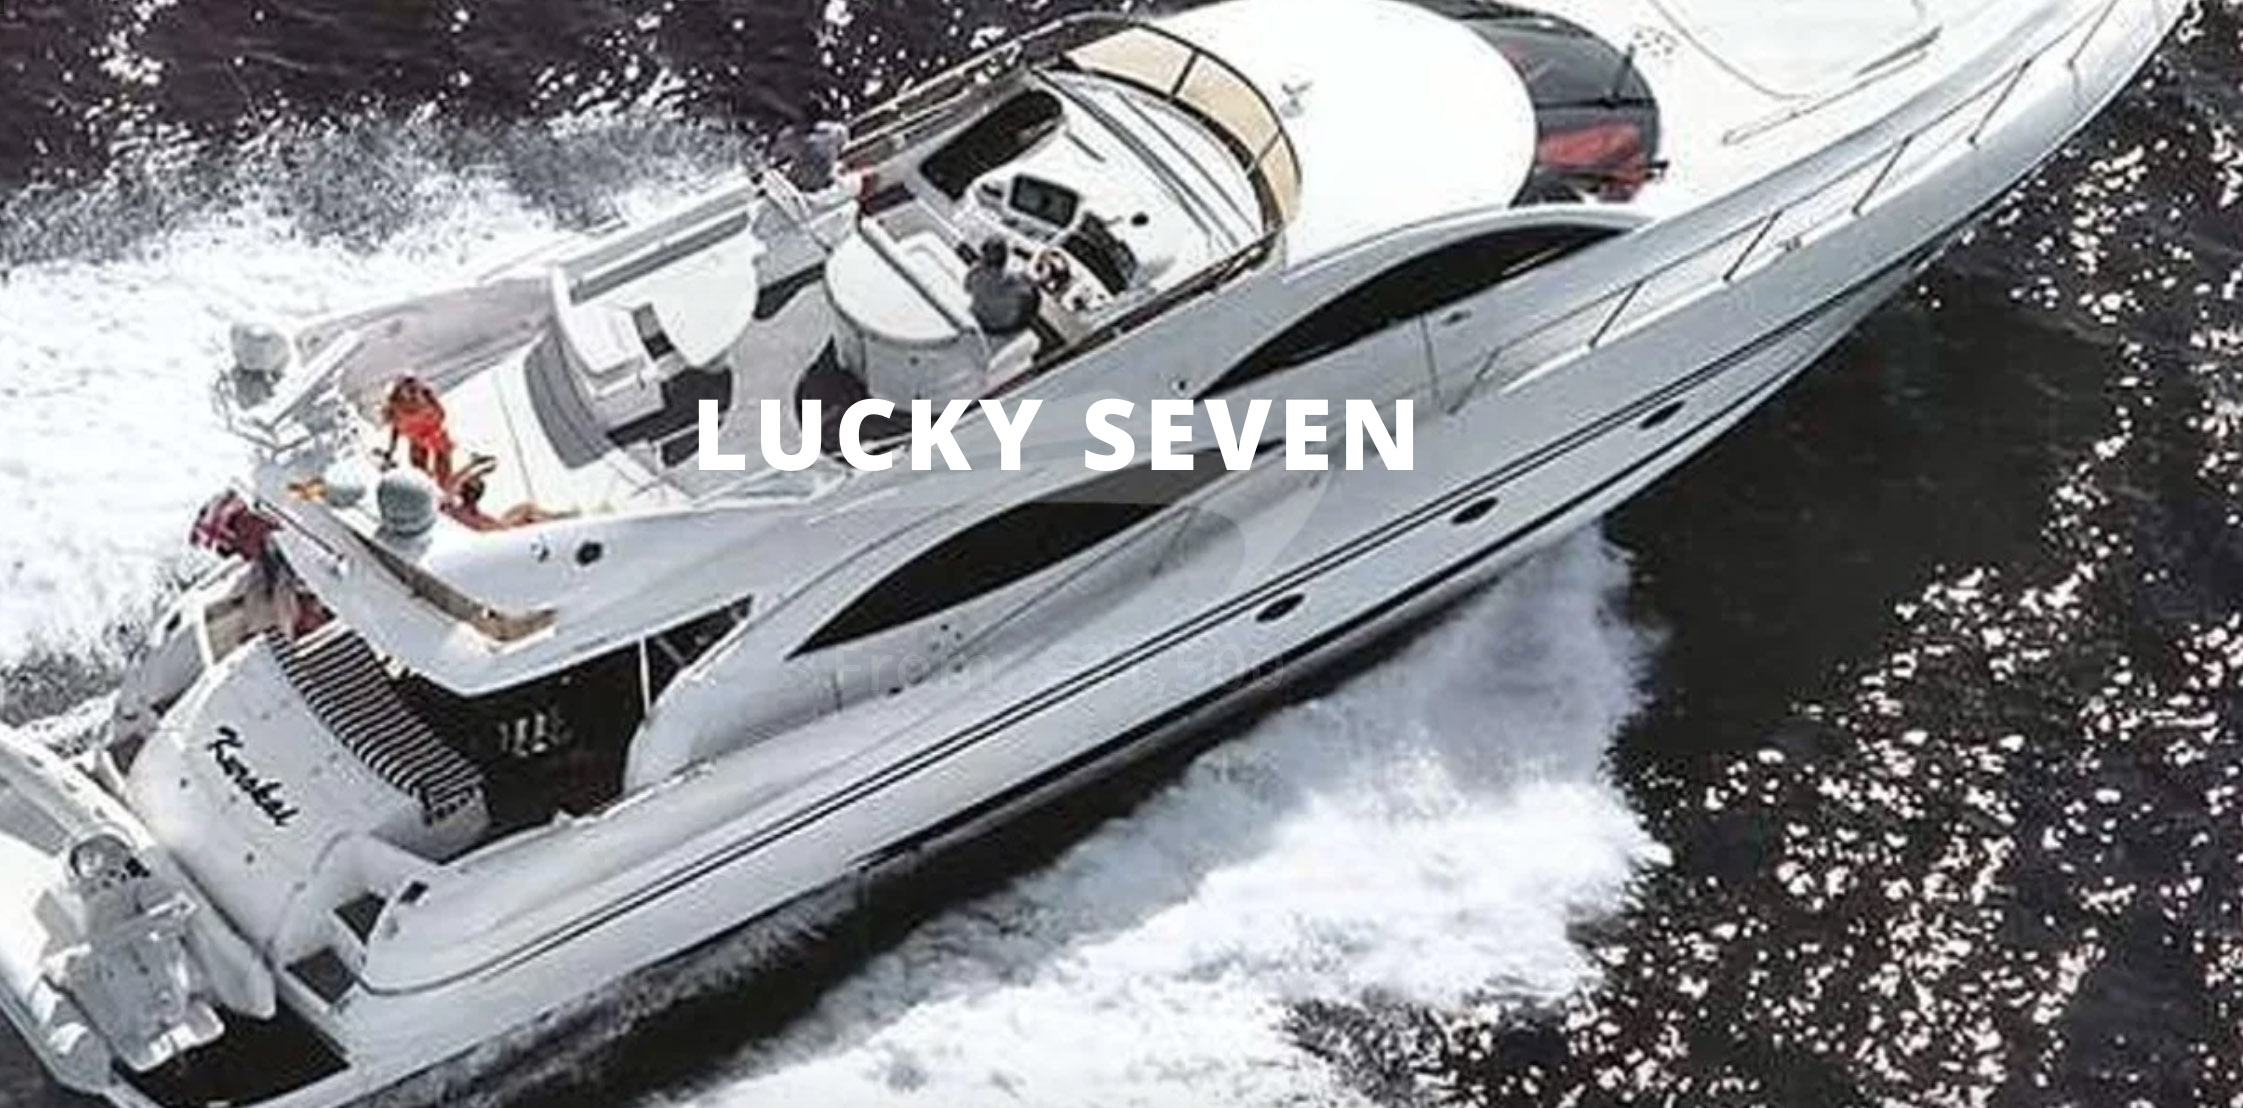 Aerial view of 76ft Sunseeker motor yacht LUCKY SEVEN at sea